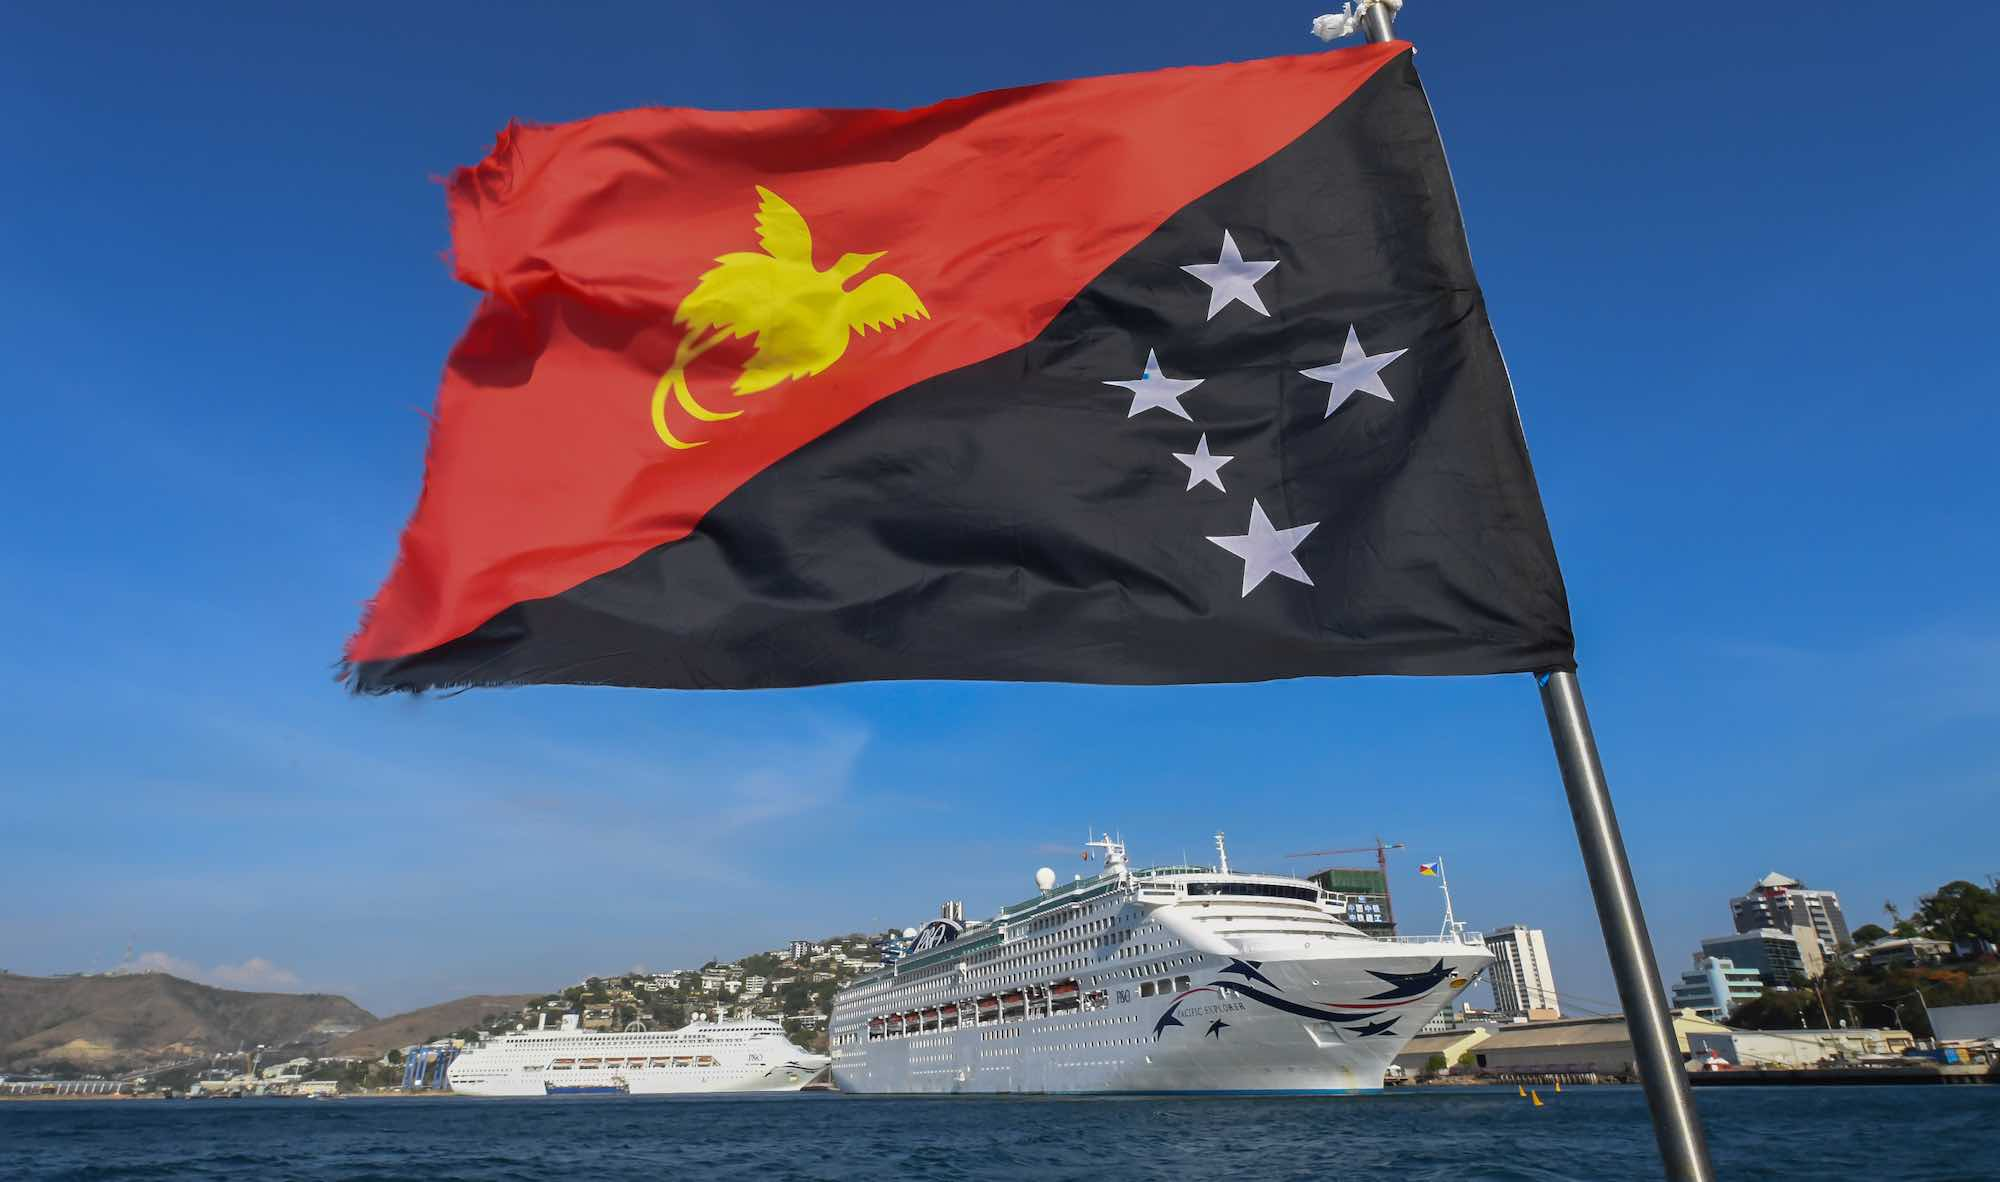 Cruise ships for accommodation during the APEC summit in Port Moresby (Photo: James D. Morgan/Getty Images)